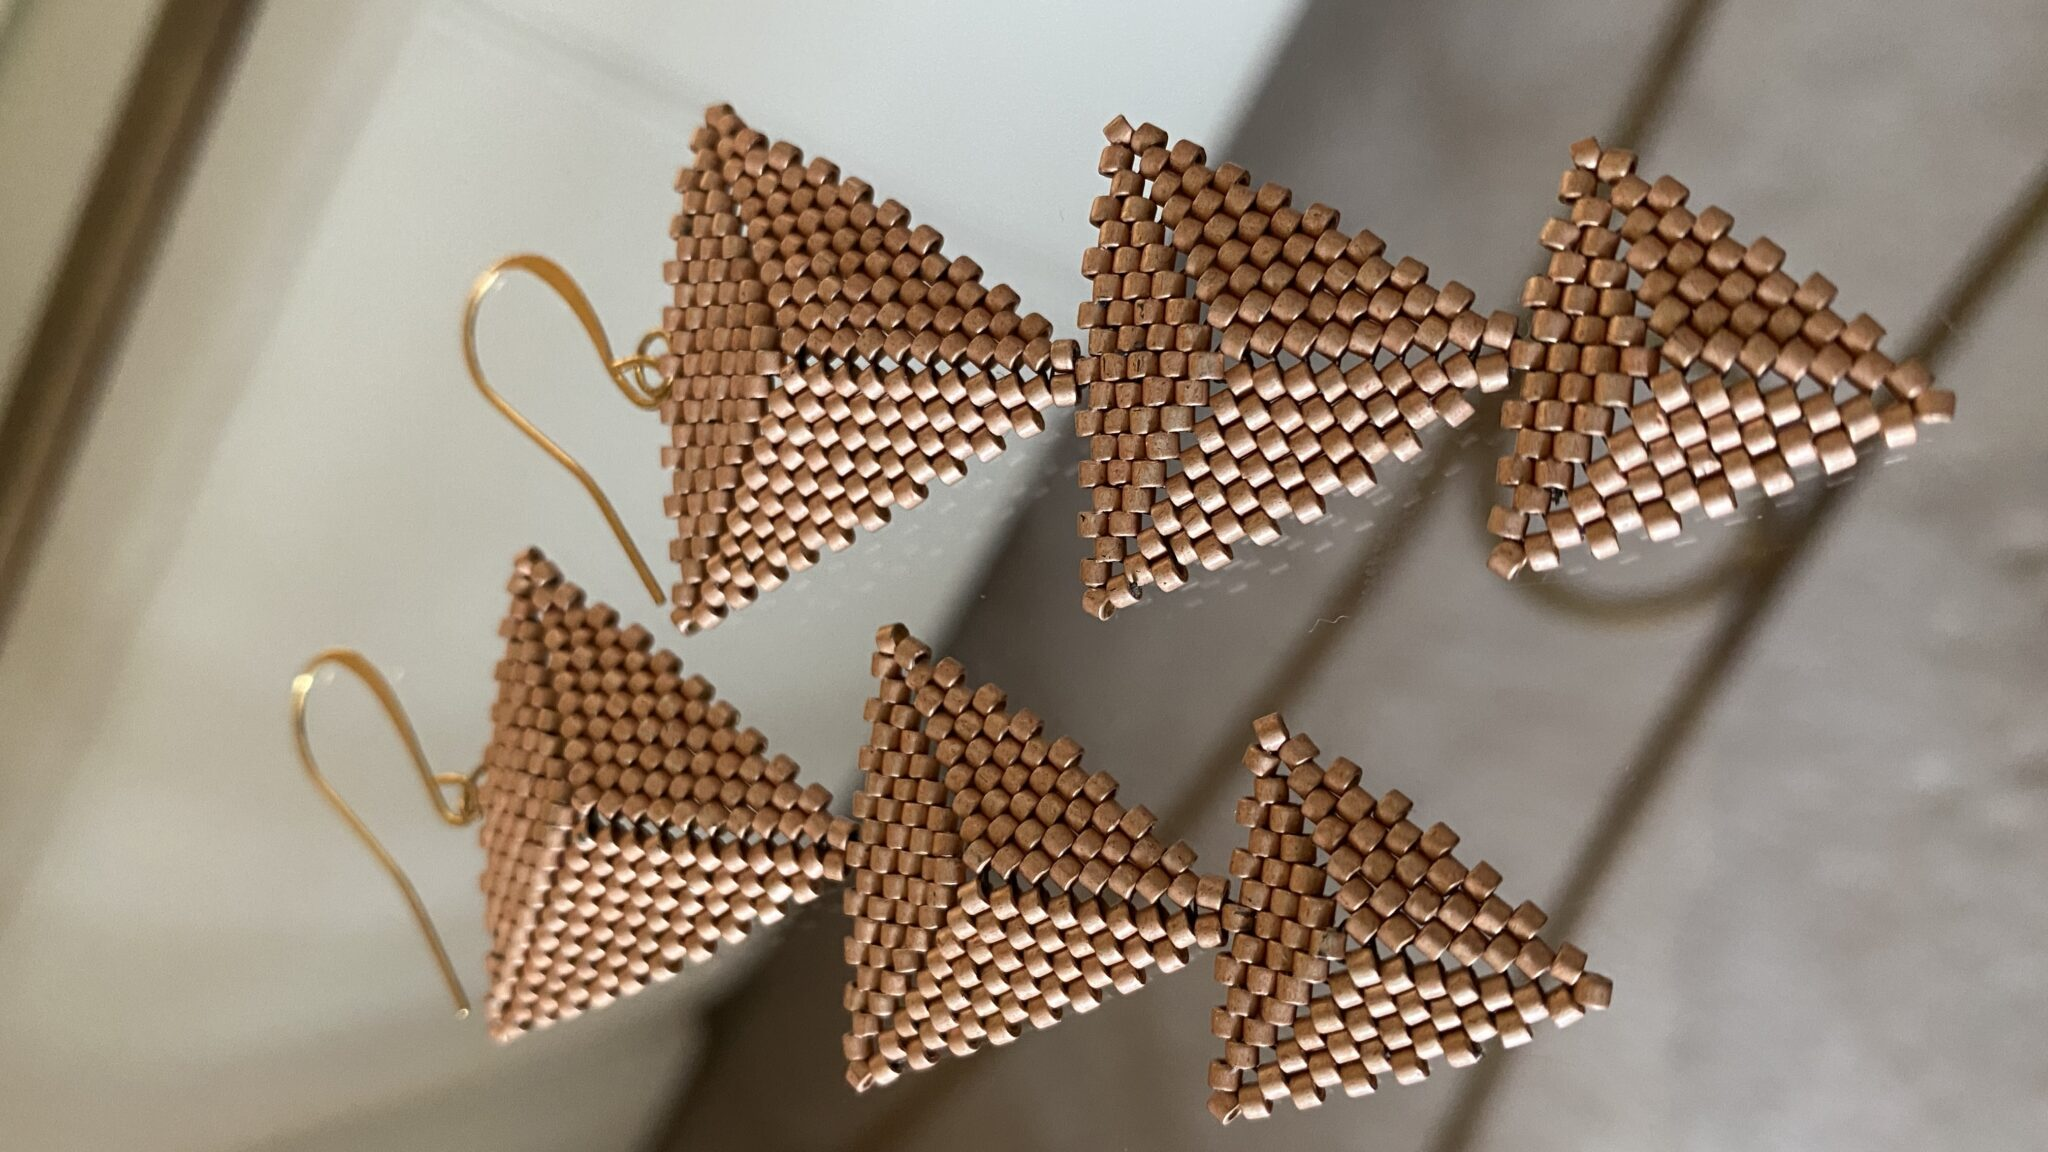 14k Rose Gold Japanese Seed Bead Earrings And Wires. Handwoven. COVET AND DESIRE